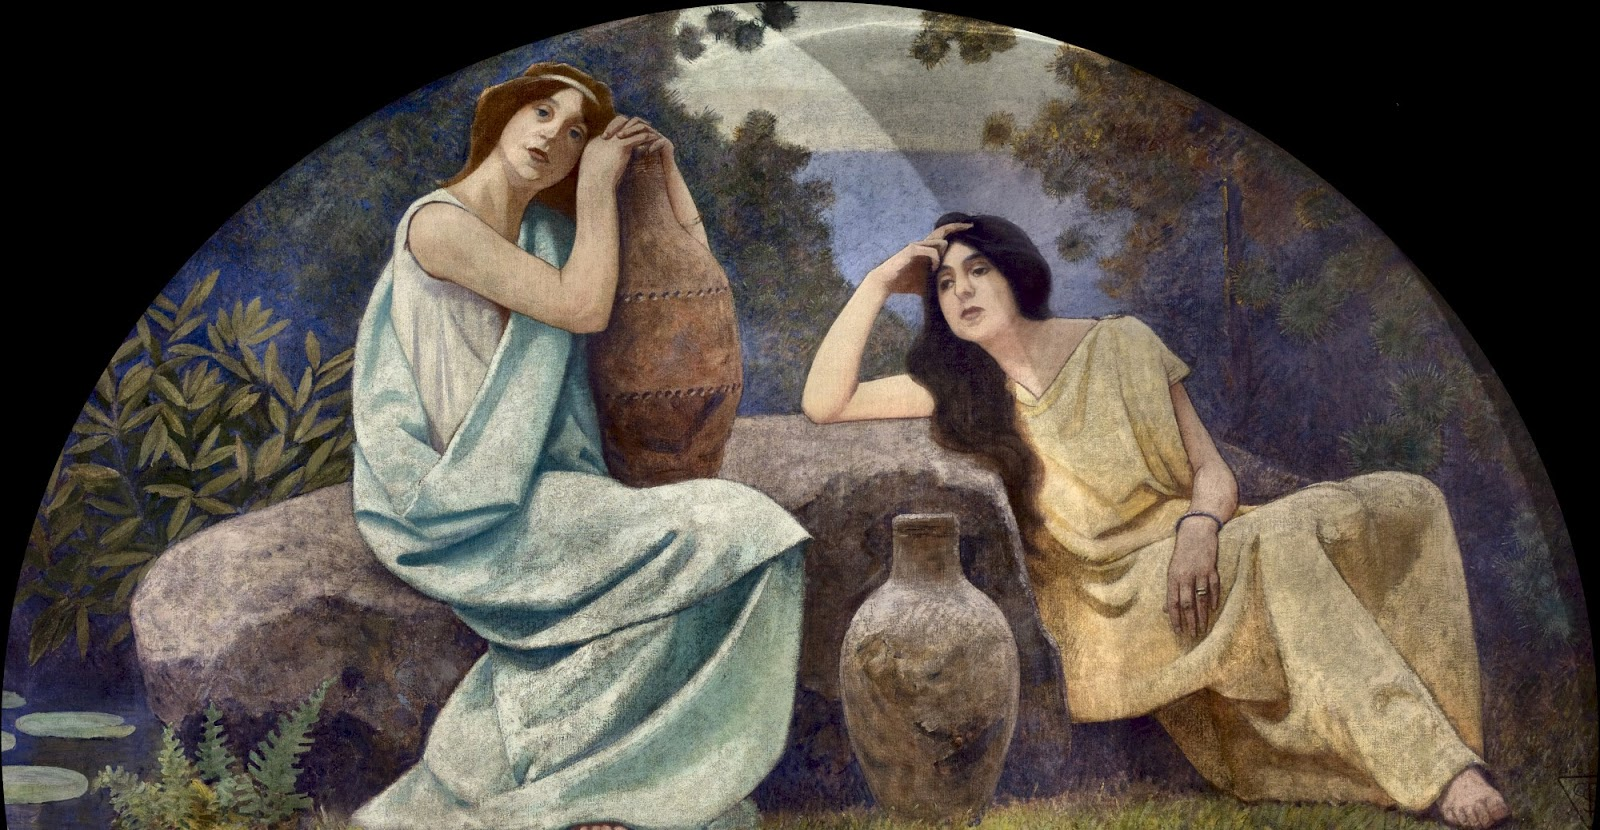 Charles  Sprague  Pearce  mural  library  of  congress  washington  rest